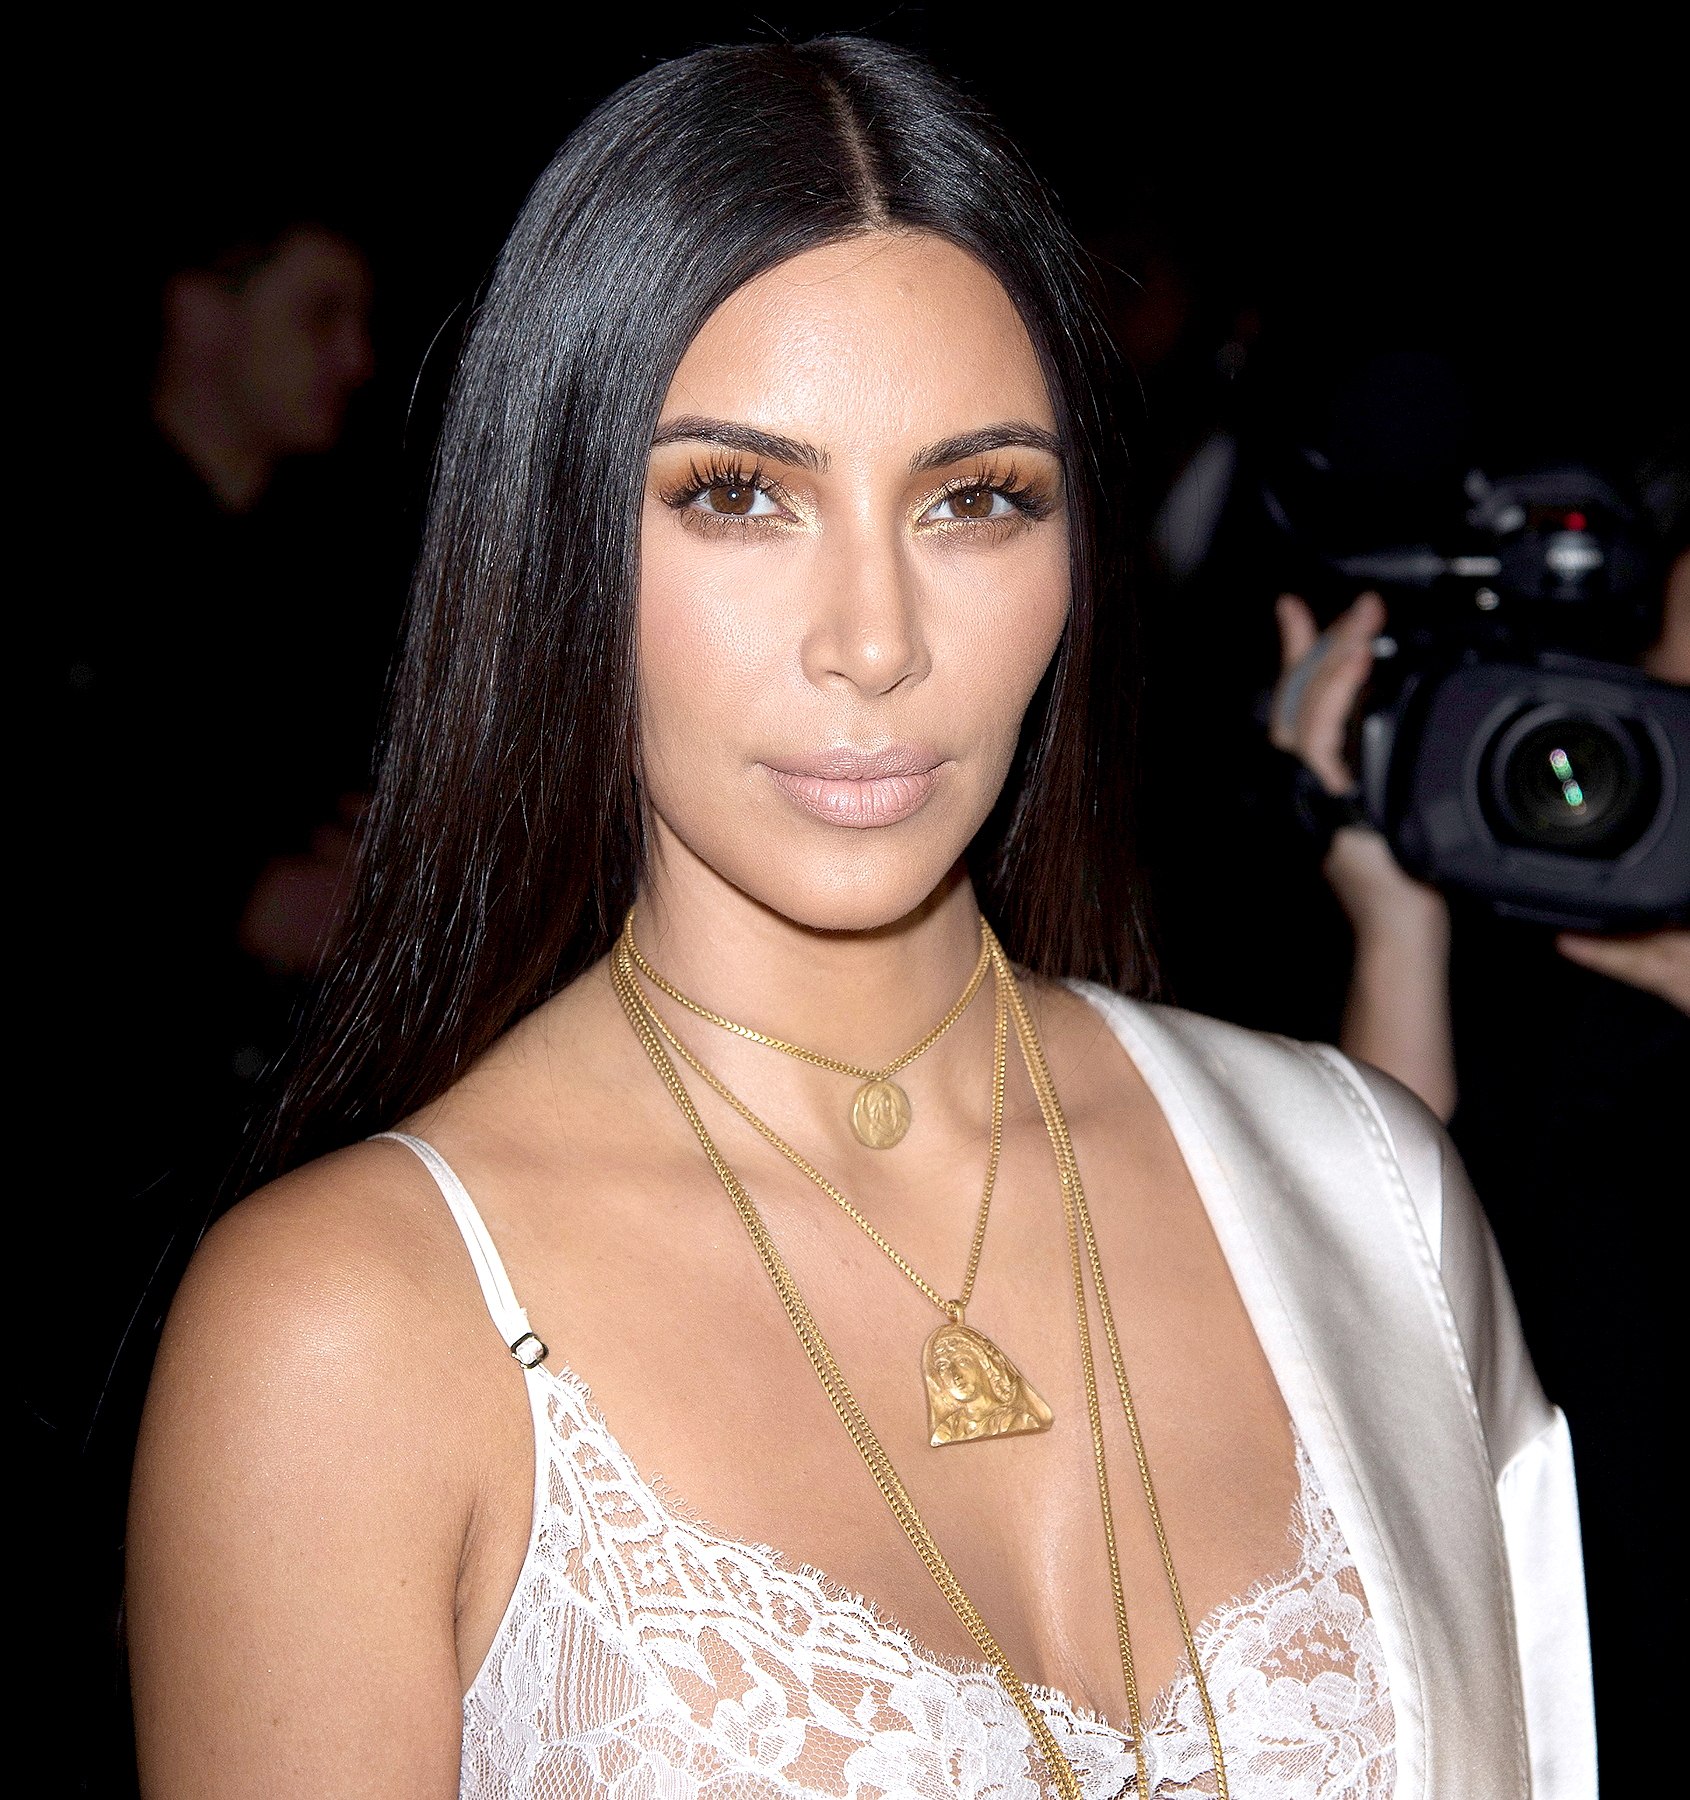 Kim Kardashian attends the Givenchy show as part of the Paris Fashion Week Womenswear Spring/Summer 2017 on October 2, 2016 in Paris, France.